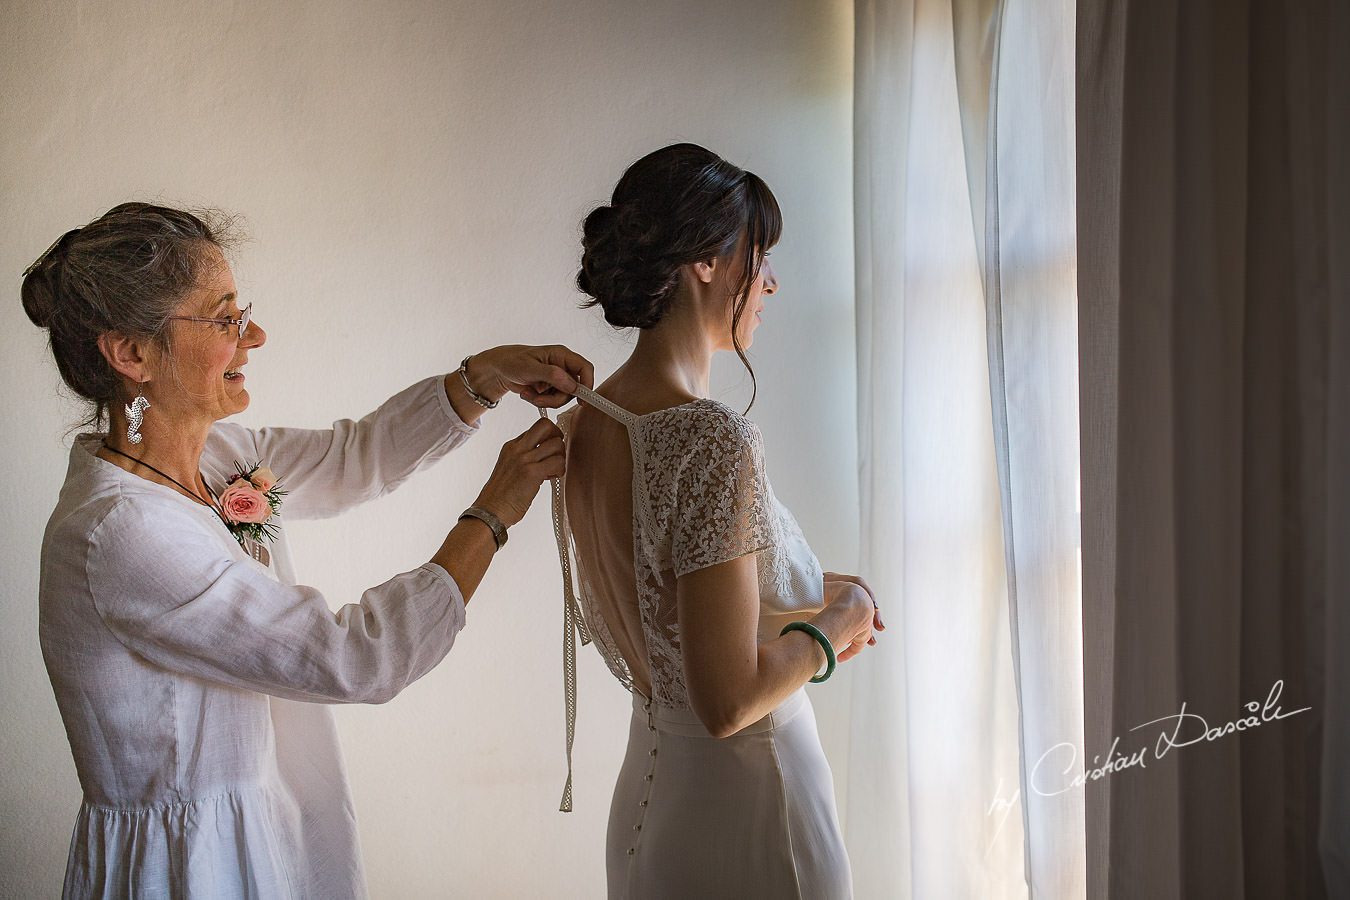 A beautiful wedding day at the Vasilias Nikoklis Inn in Paphos, captured by Cristian Dascalu. Sarah's mother is getting her ready for the wedding ceremony.